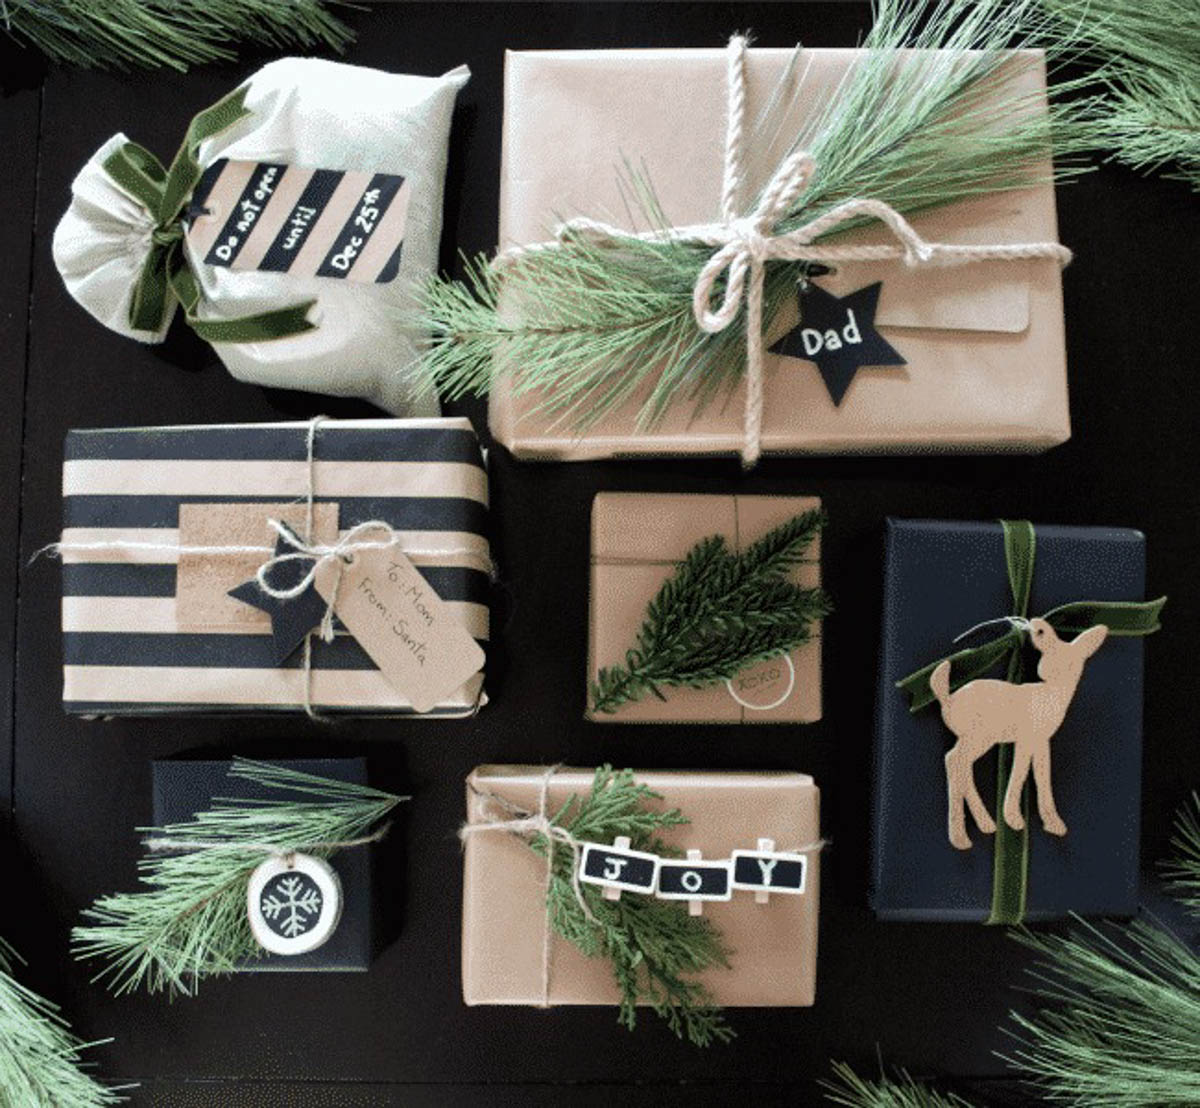 Image of multiple boxes wrapped in rustic gift wrapping paper